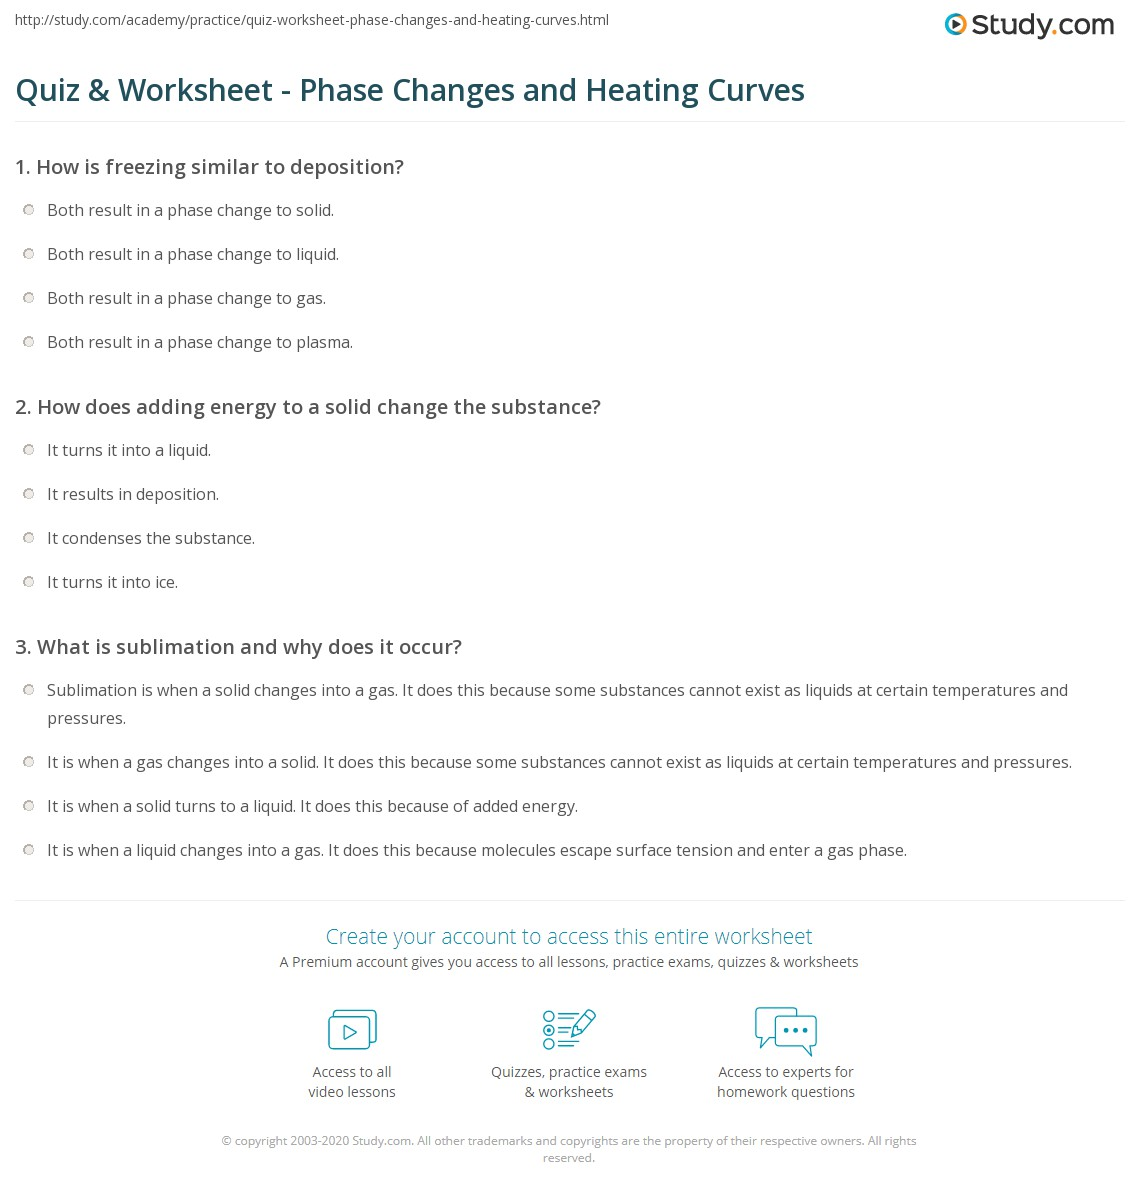 worksheet A Heating Curve Worksheet Answers quiz worksheet phase changes and heating curves study com print worksheet